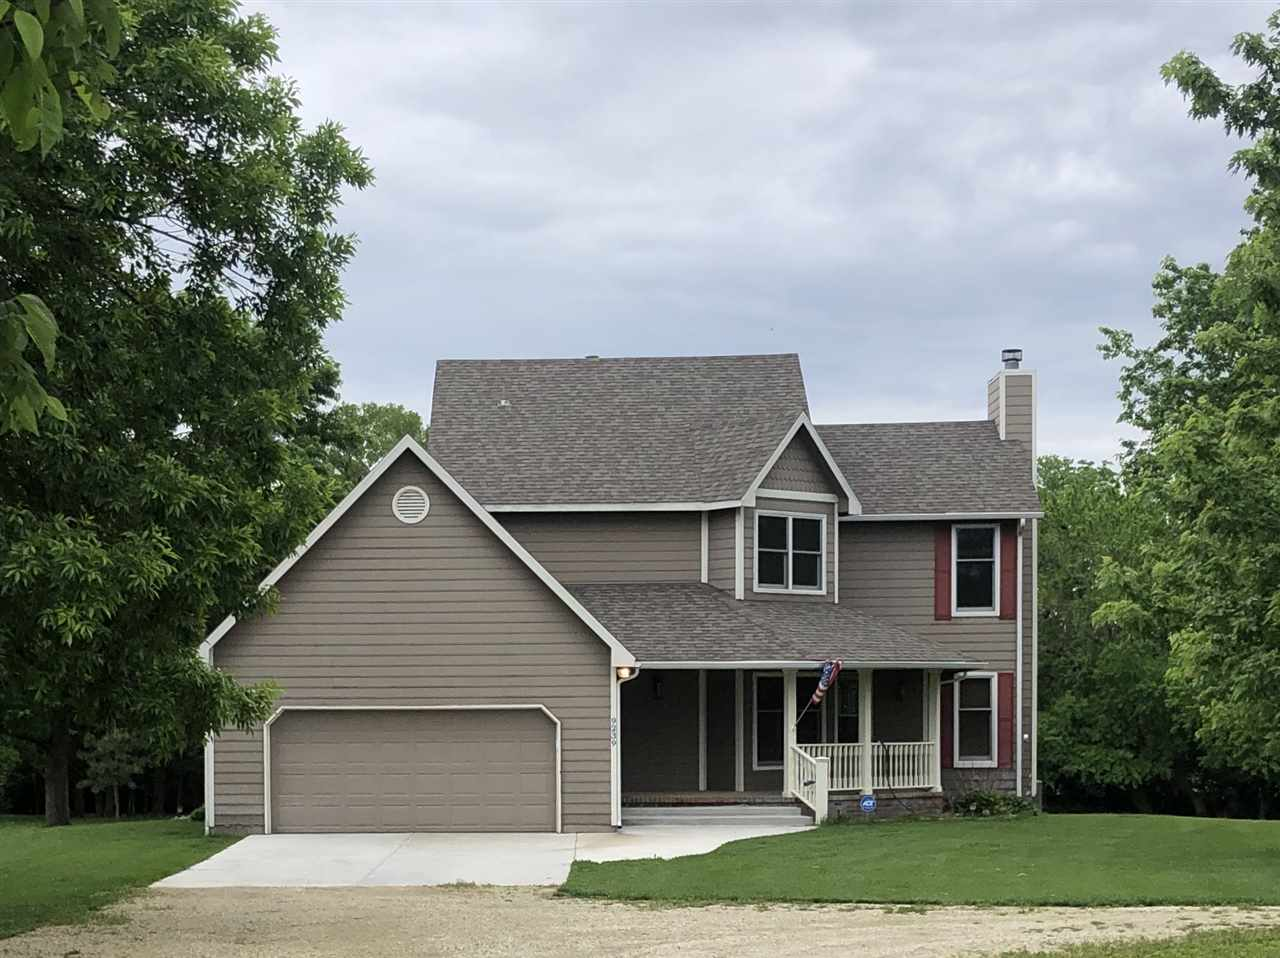 Peaceful country living awaiting you!  This stately homes sits a 6.83 acre private oasis with trees,